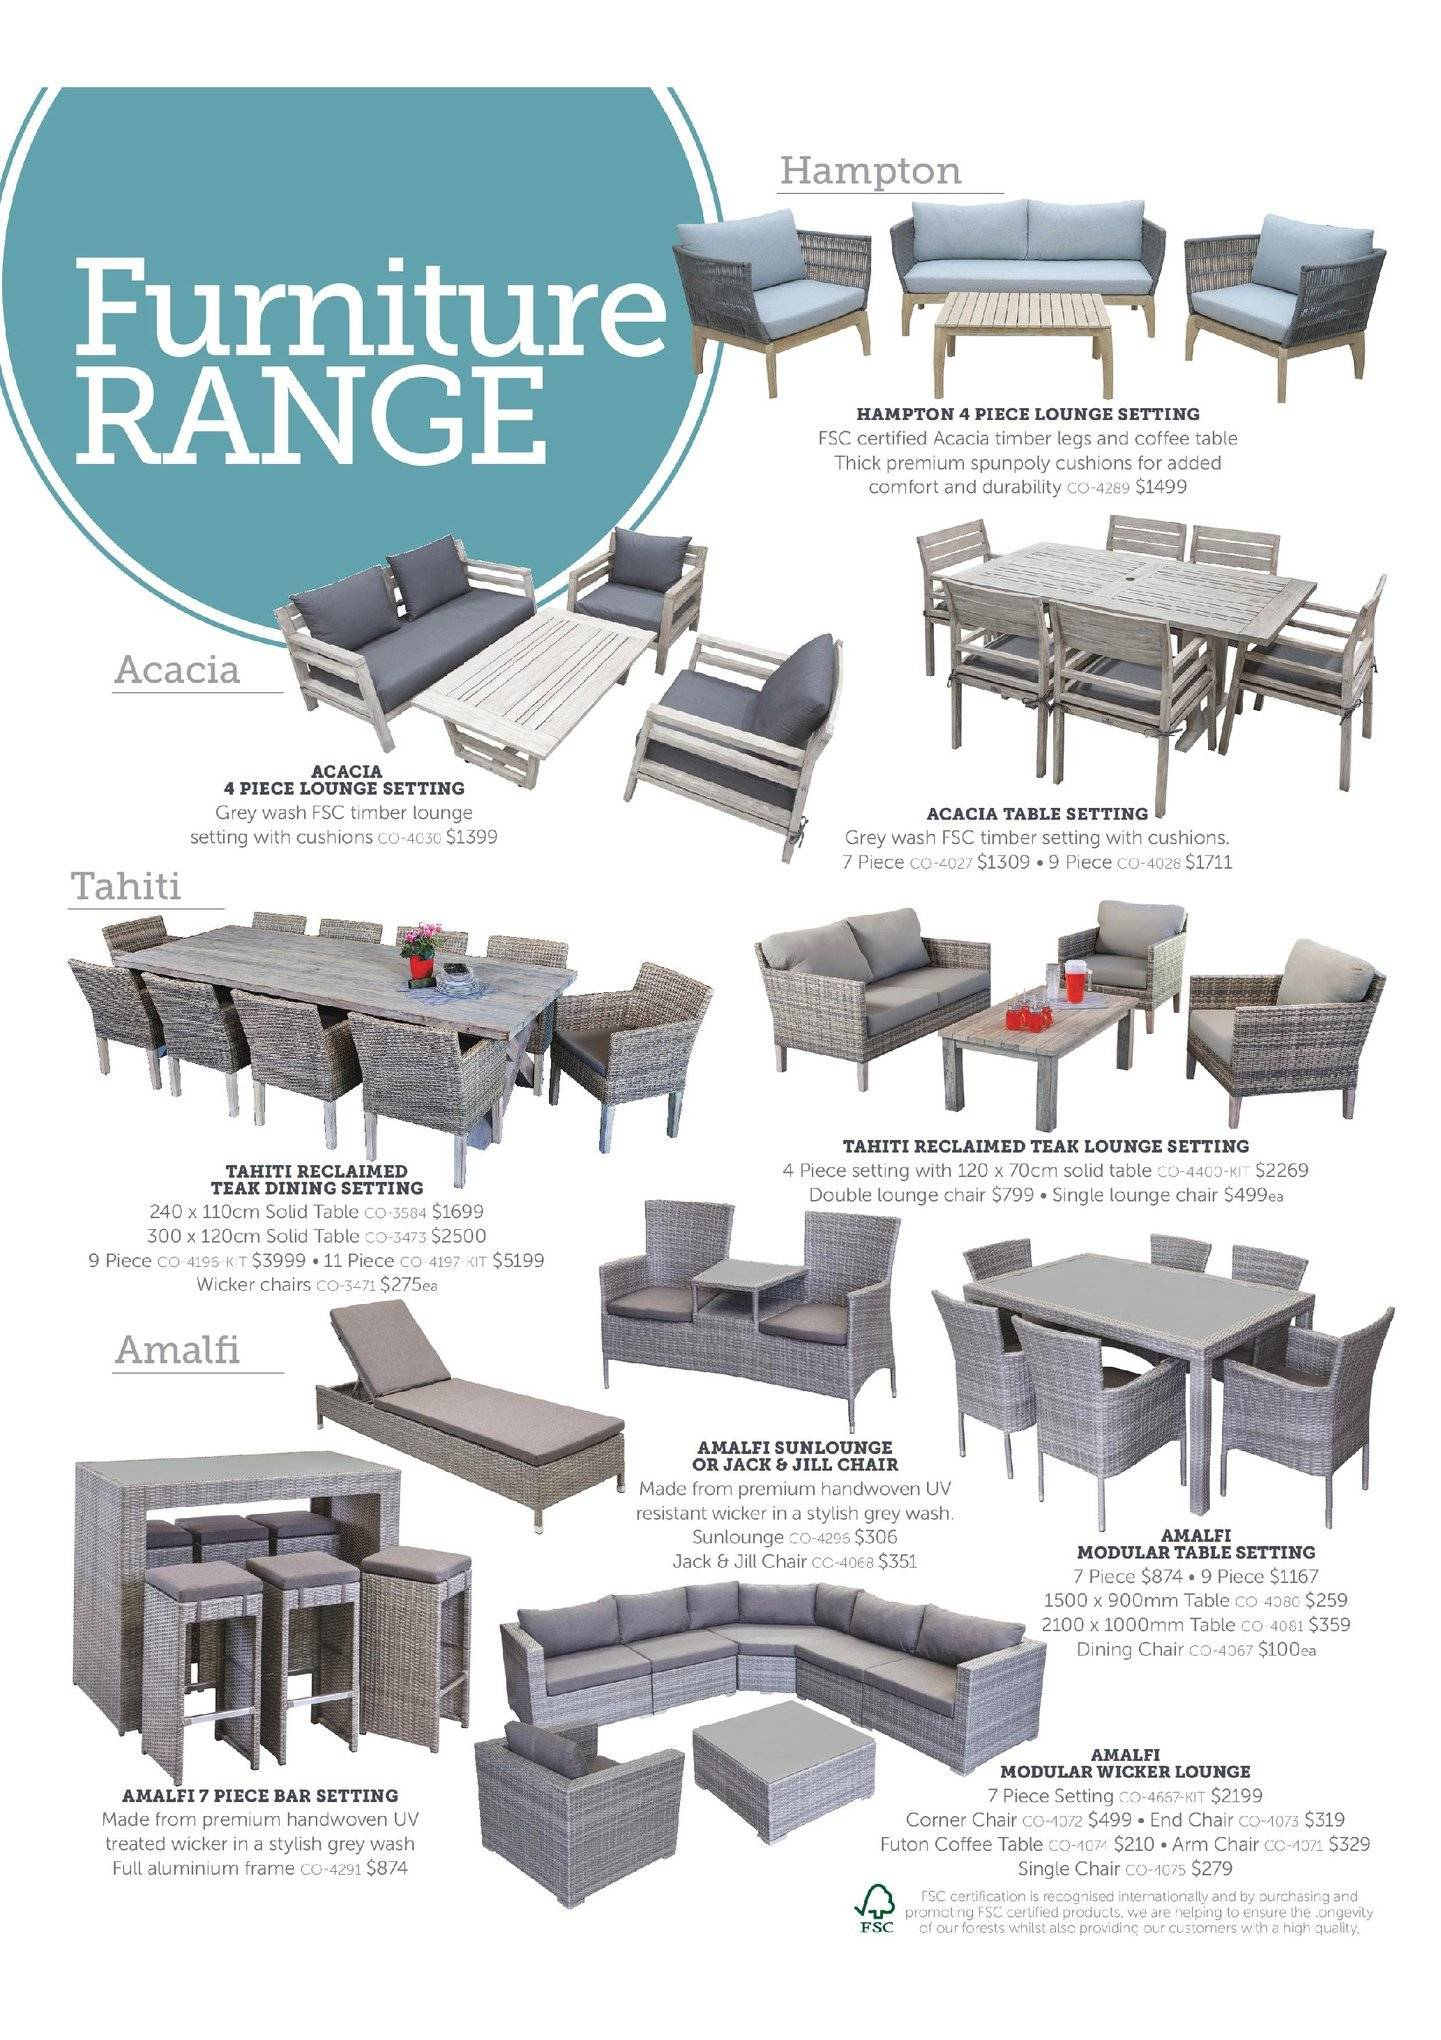 Stratco catalogue and weekly specials 7 10 2018 - 30 6 2019 | Au